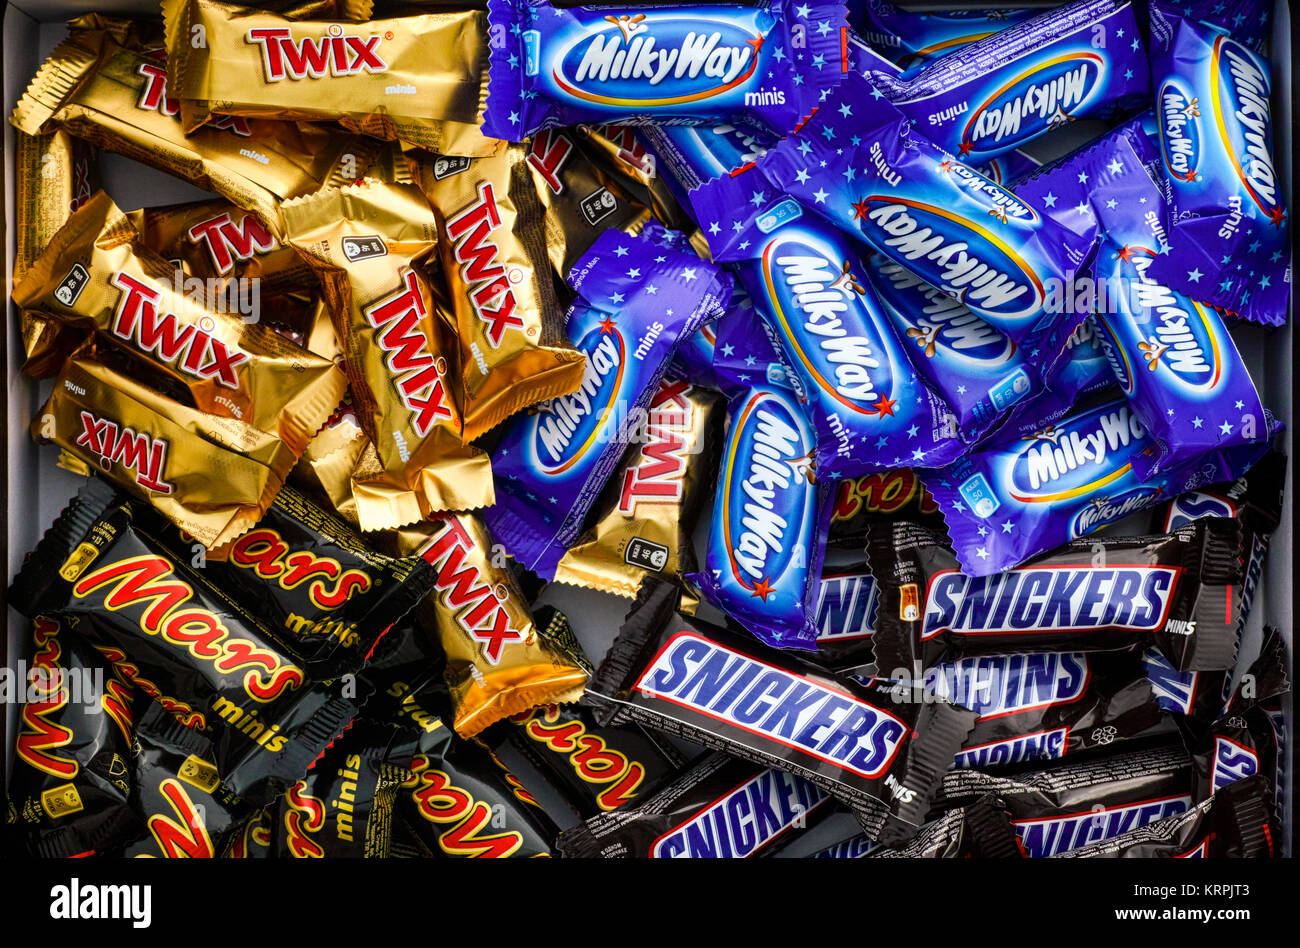 Mars chocolate bar wrapper stock photos mars chocolate bar wrapper tambov russian federation november 15 2017 snickers mars milky way and buycottarizona Gallery